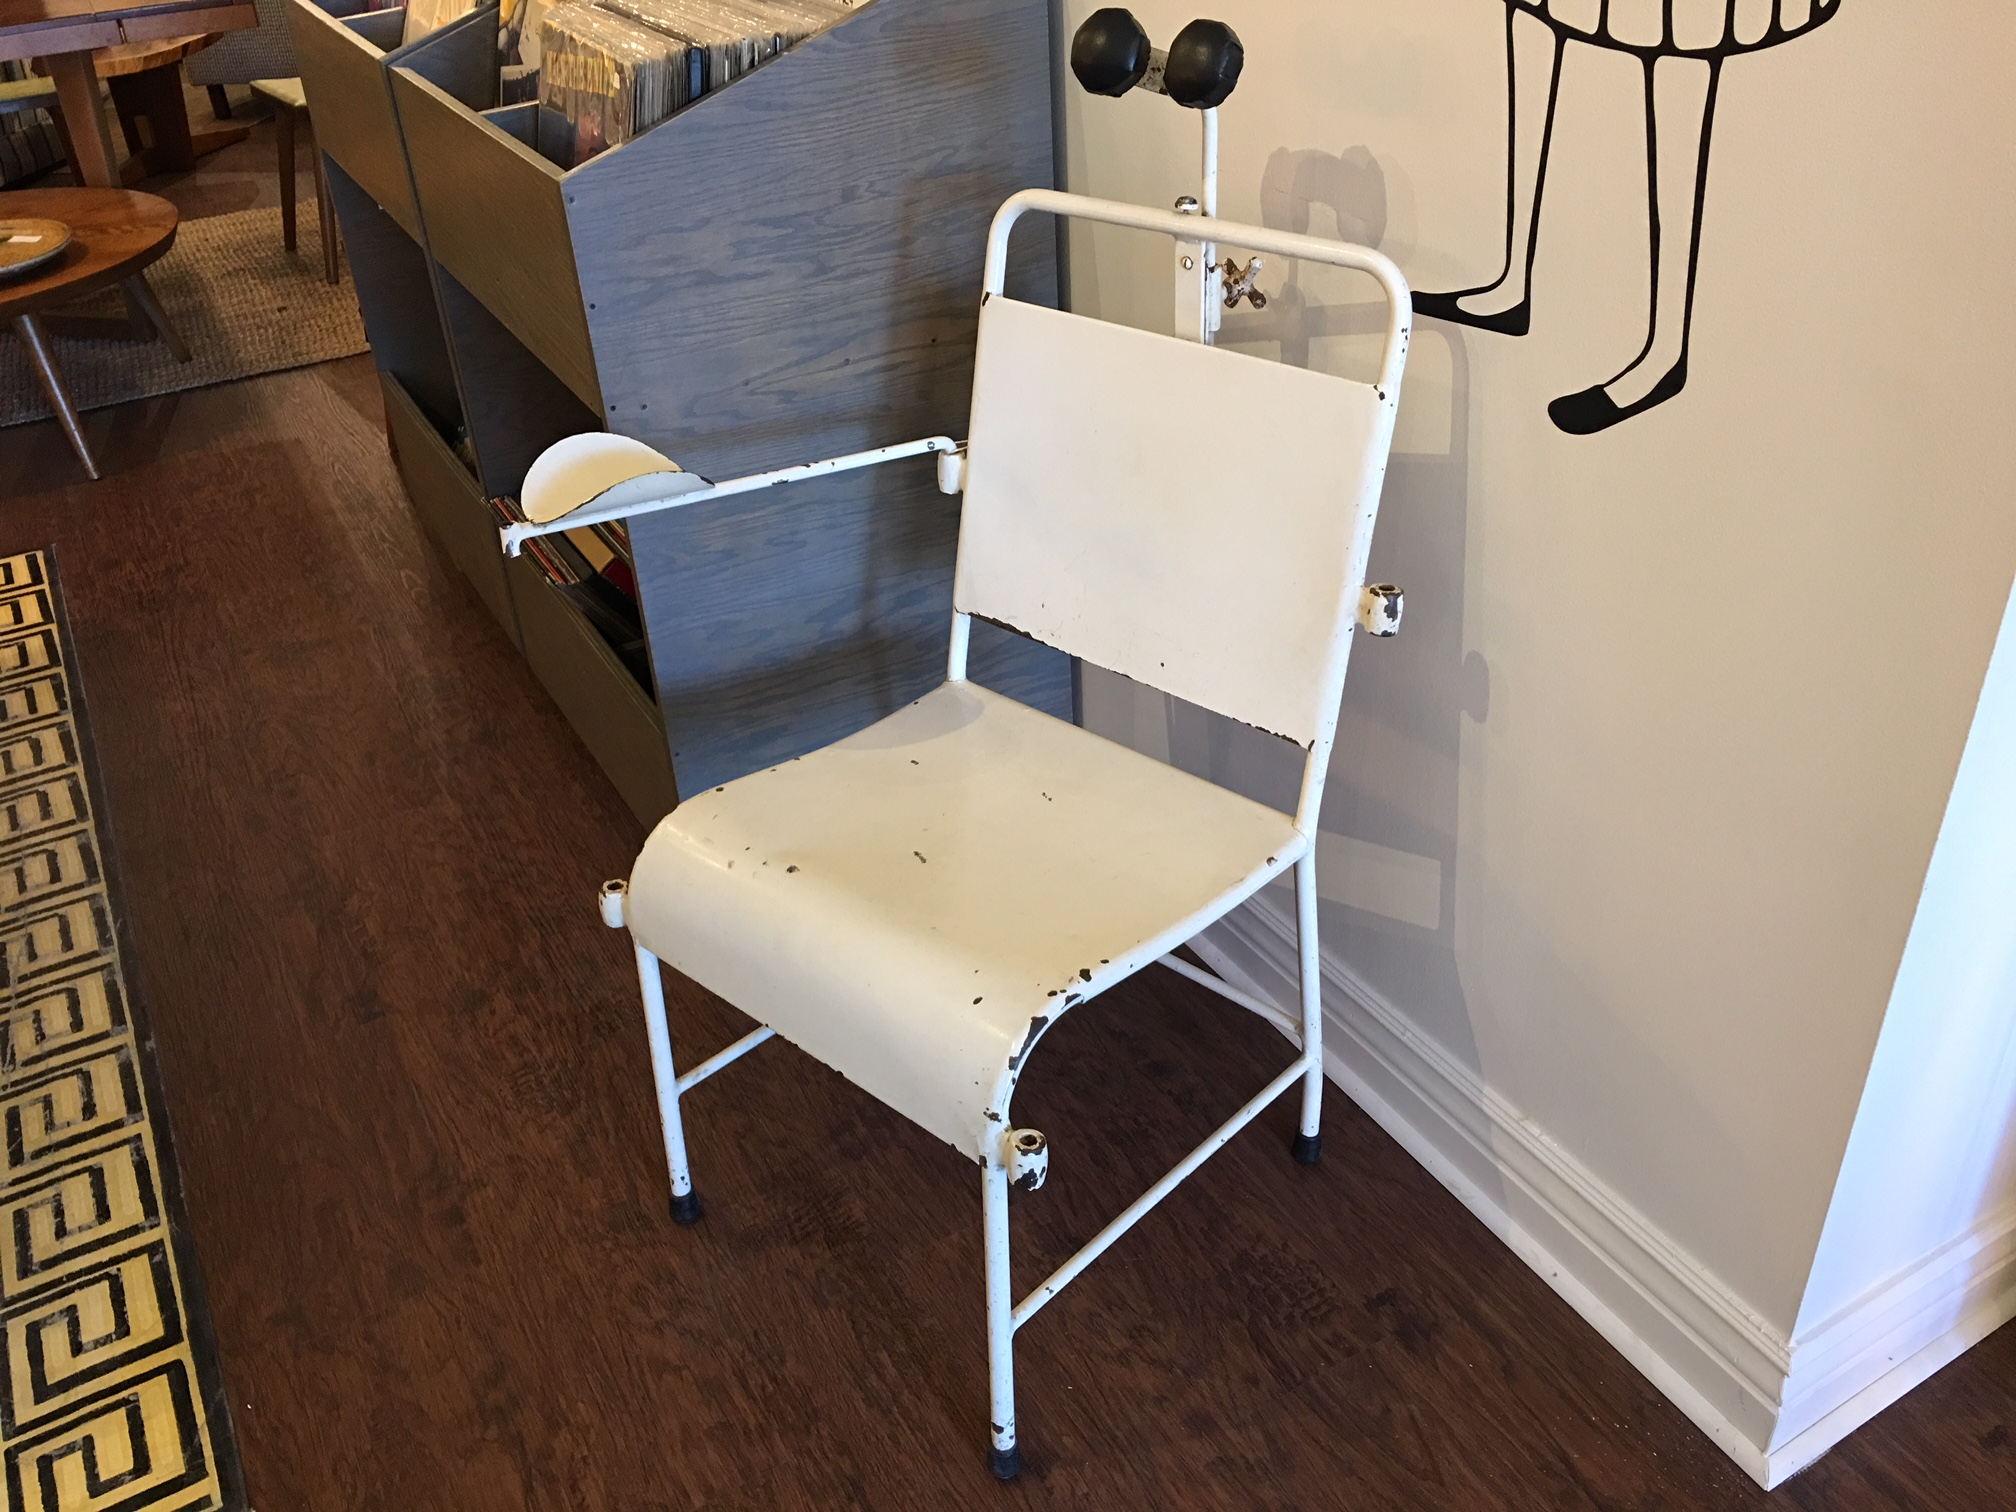 Antique Medical Blood Draw Chair.   $275